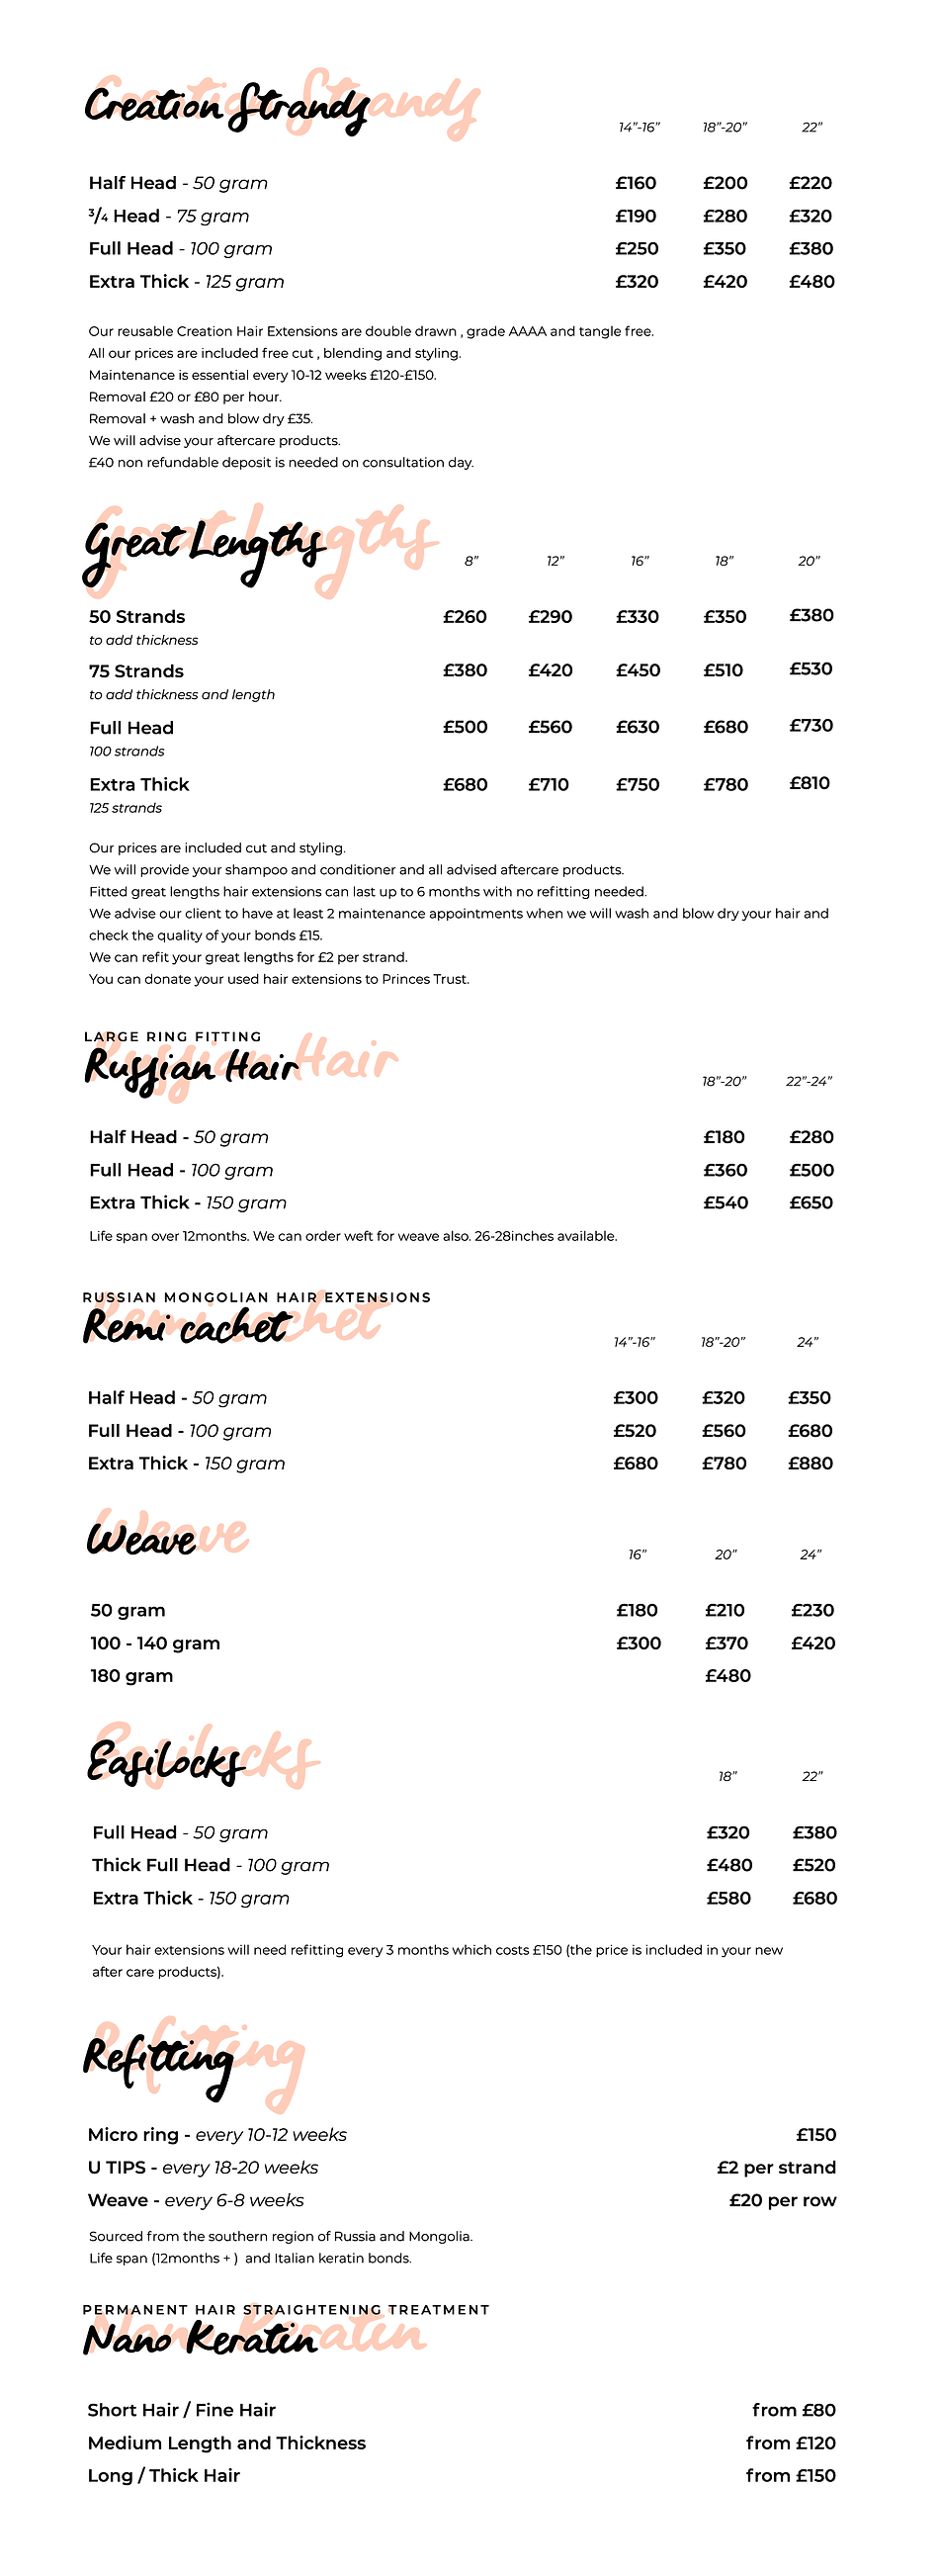 Creation Cottage price list.png